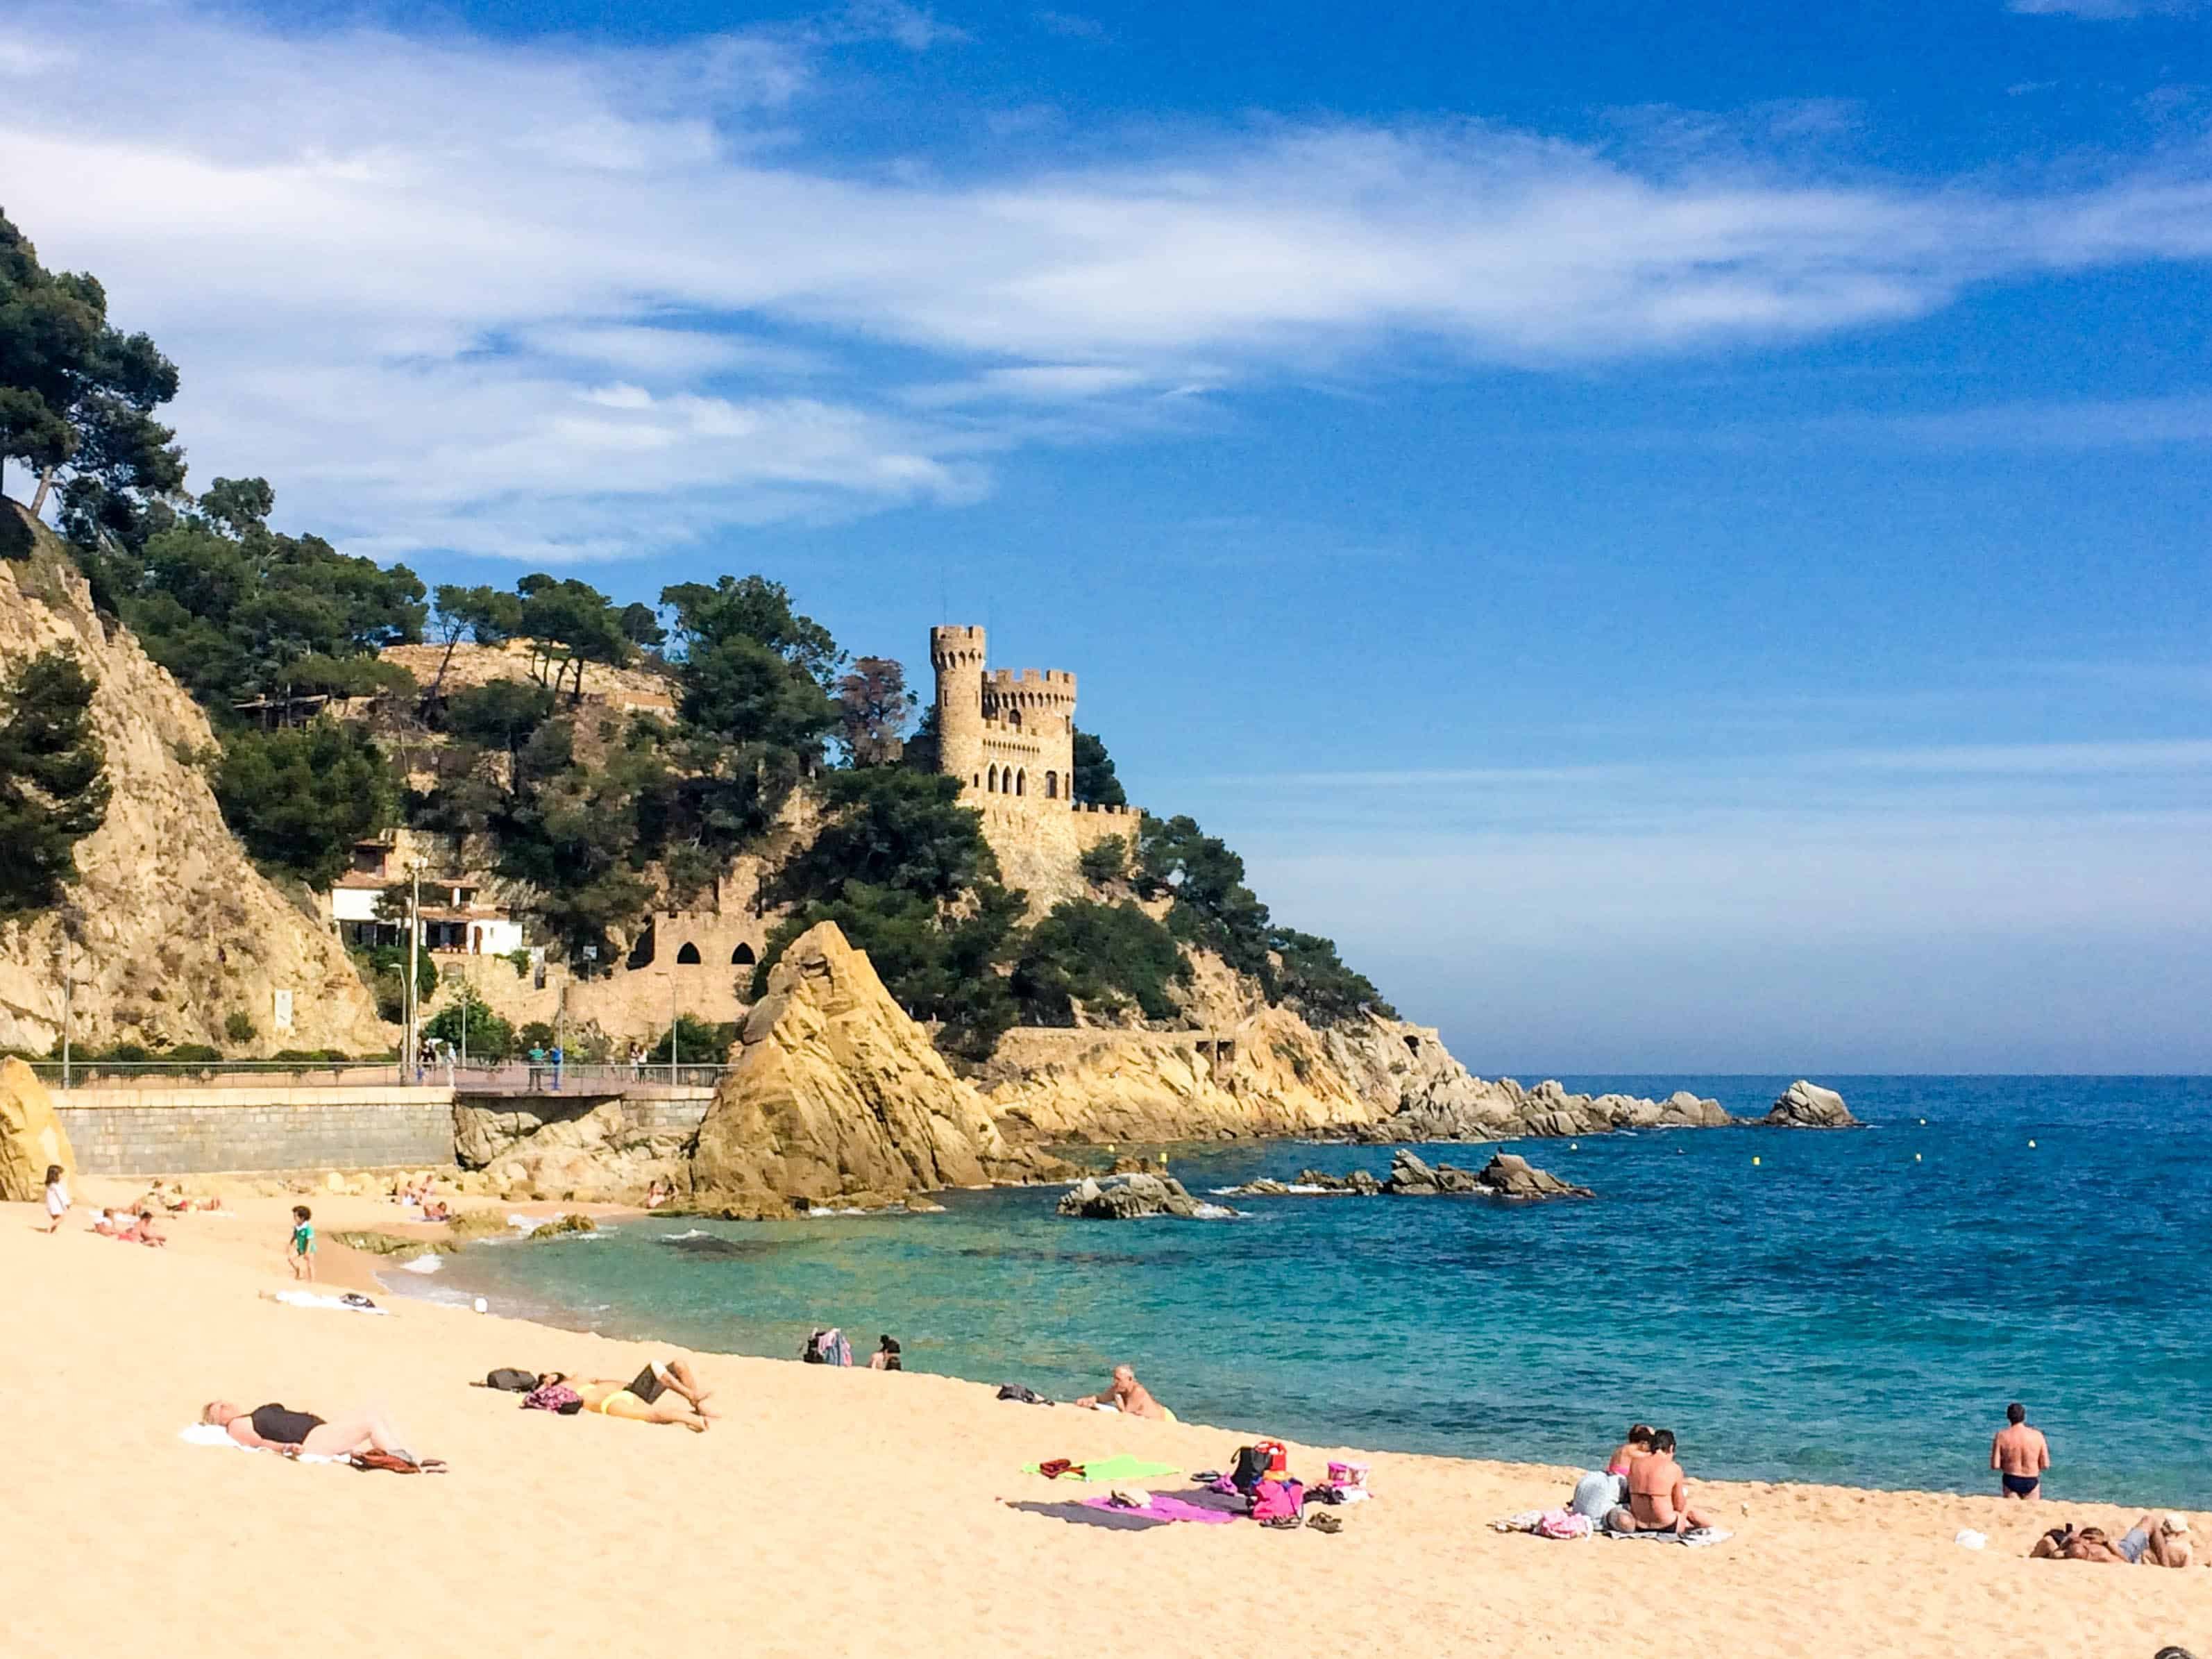 Lung cancer remains the most commonly diagnosed cancer and the leading cause of cancer death worldwide because of inadequate tobacco control policies. A weekend guide to Lloret de Mar, Spain